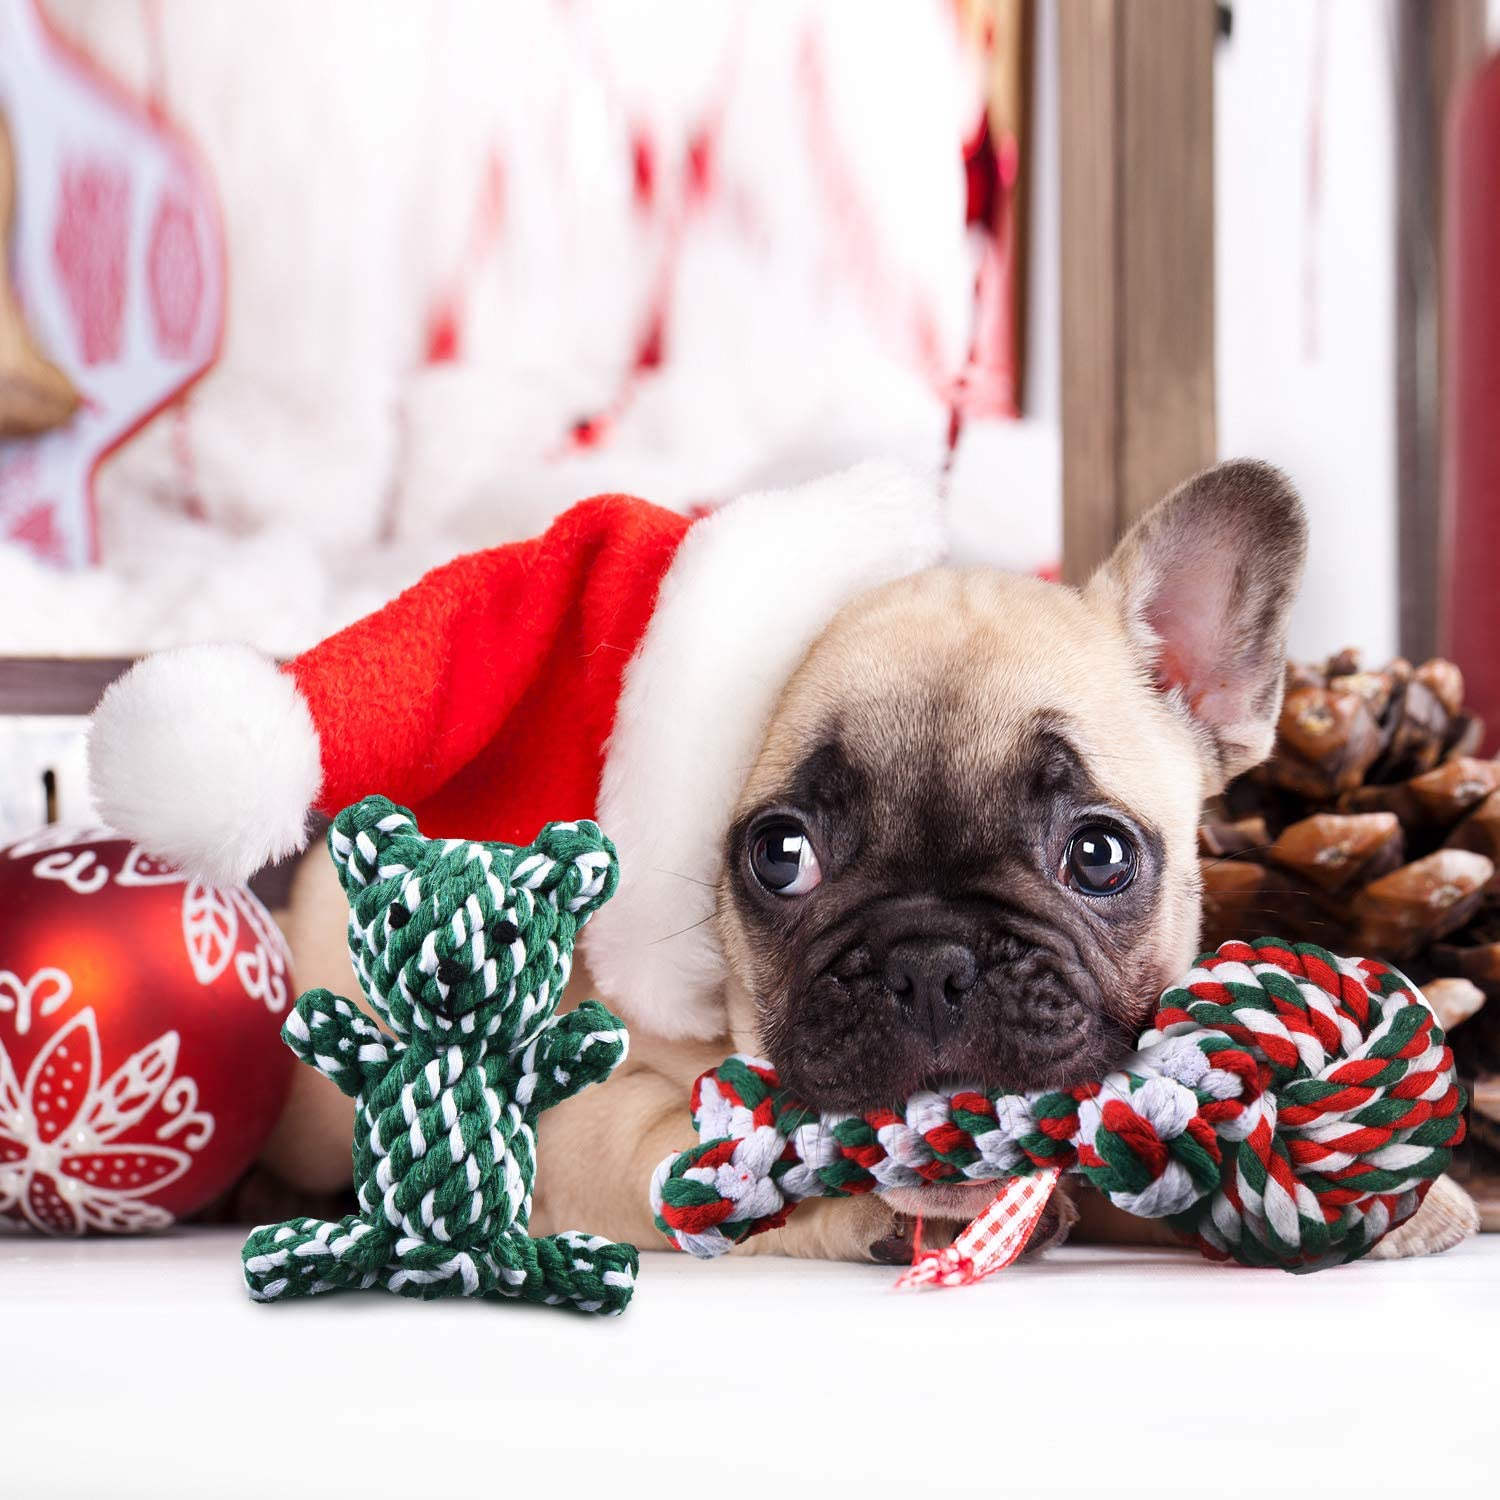 5 Pieces Cleaning Tooth Oral Cavity for Small and Medium-Sized Dogs Gejoy Christmas Dog Rope Toys Christmas Dog Chew Toys Kit Cotton Rope Knot Chew Toy Dog Rope Knot Toys for Dog Molars Training